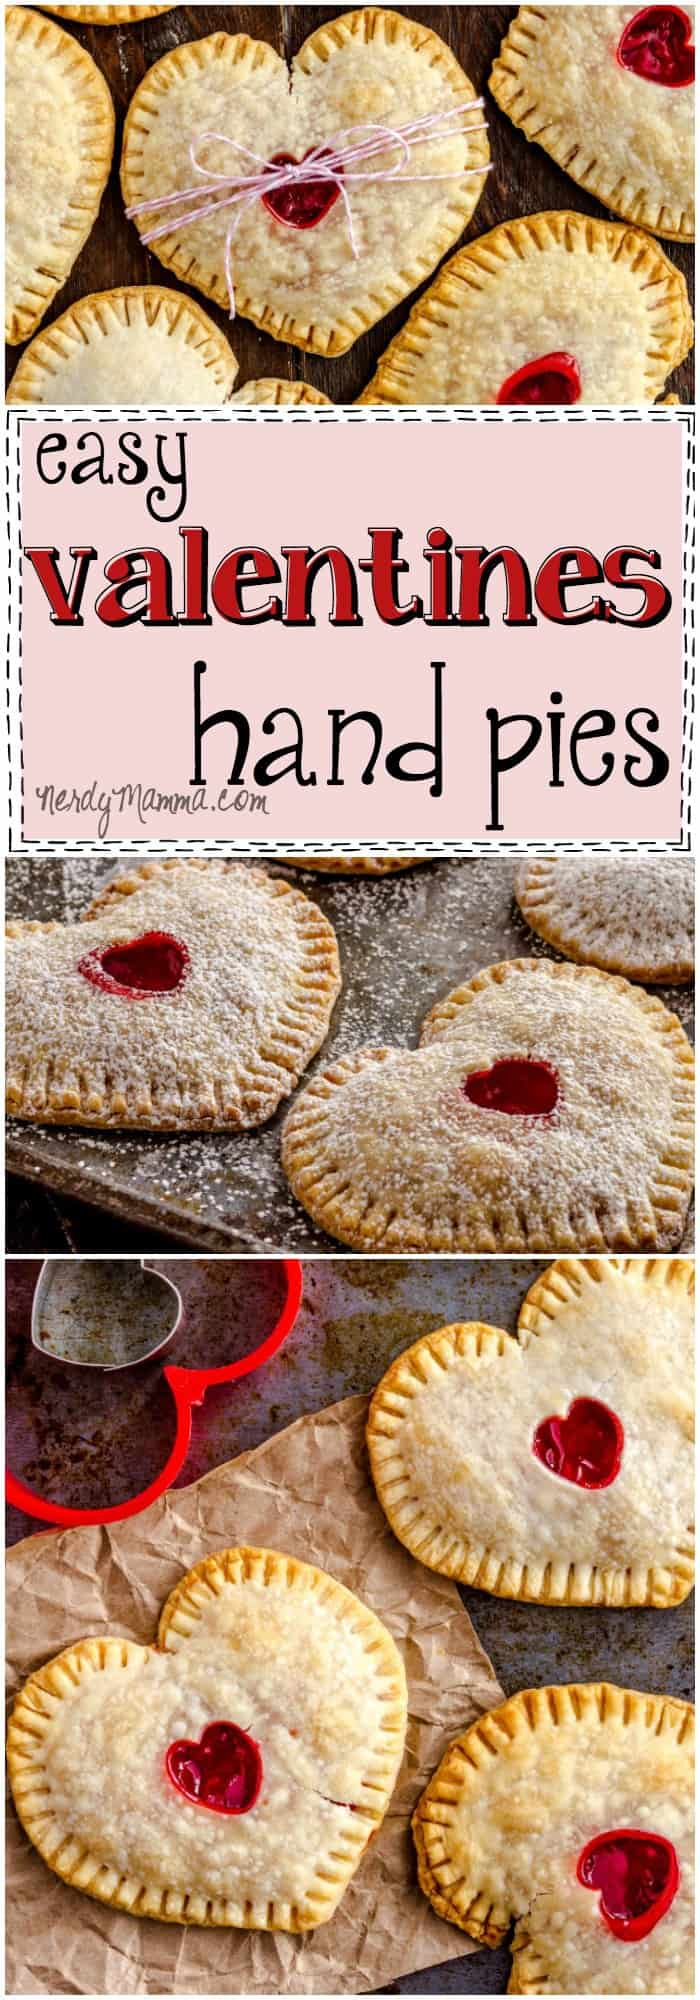 This recipe for these cute Valentines Hand Pies is just so ridiculously easy...Can;t believe I never tried this before! LOL!